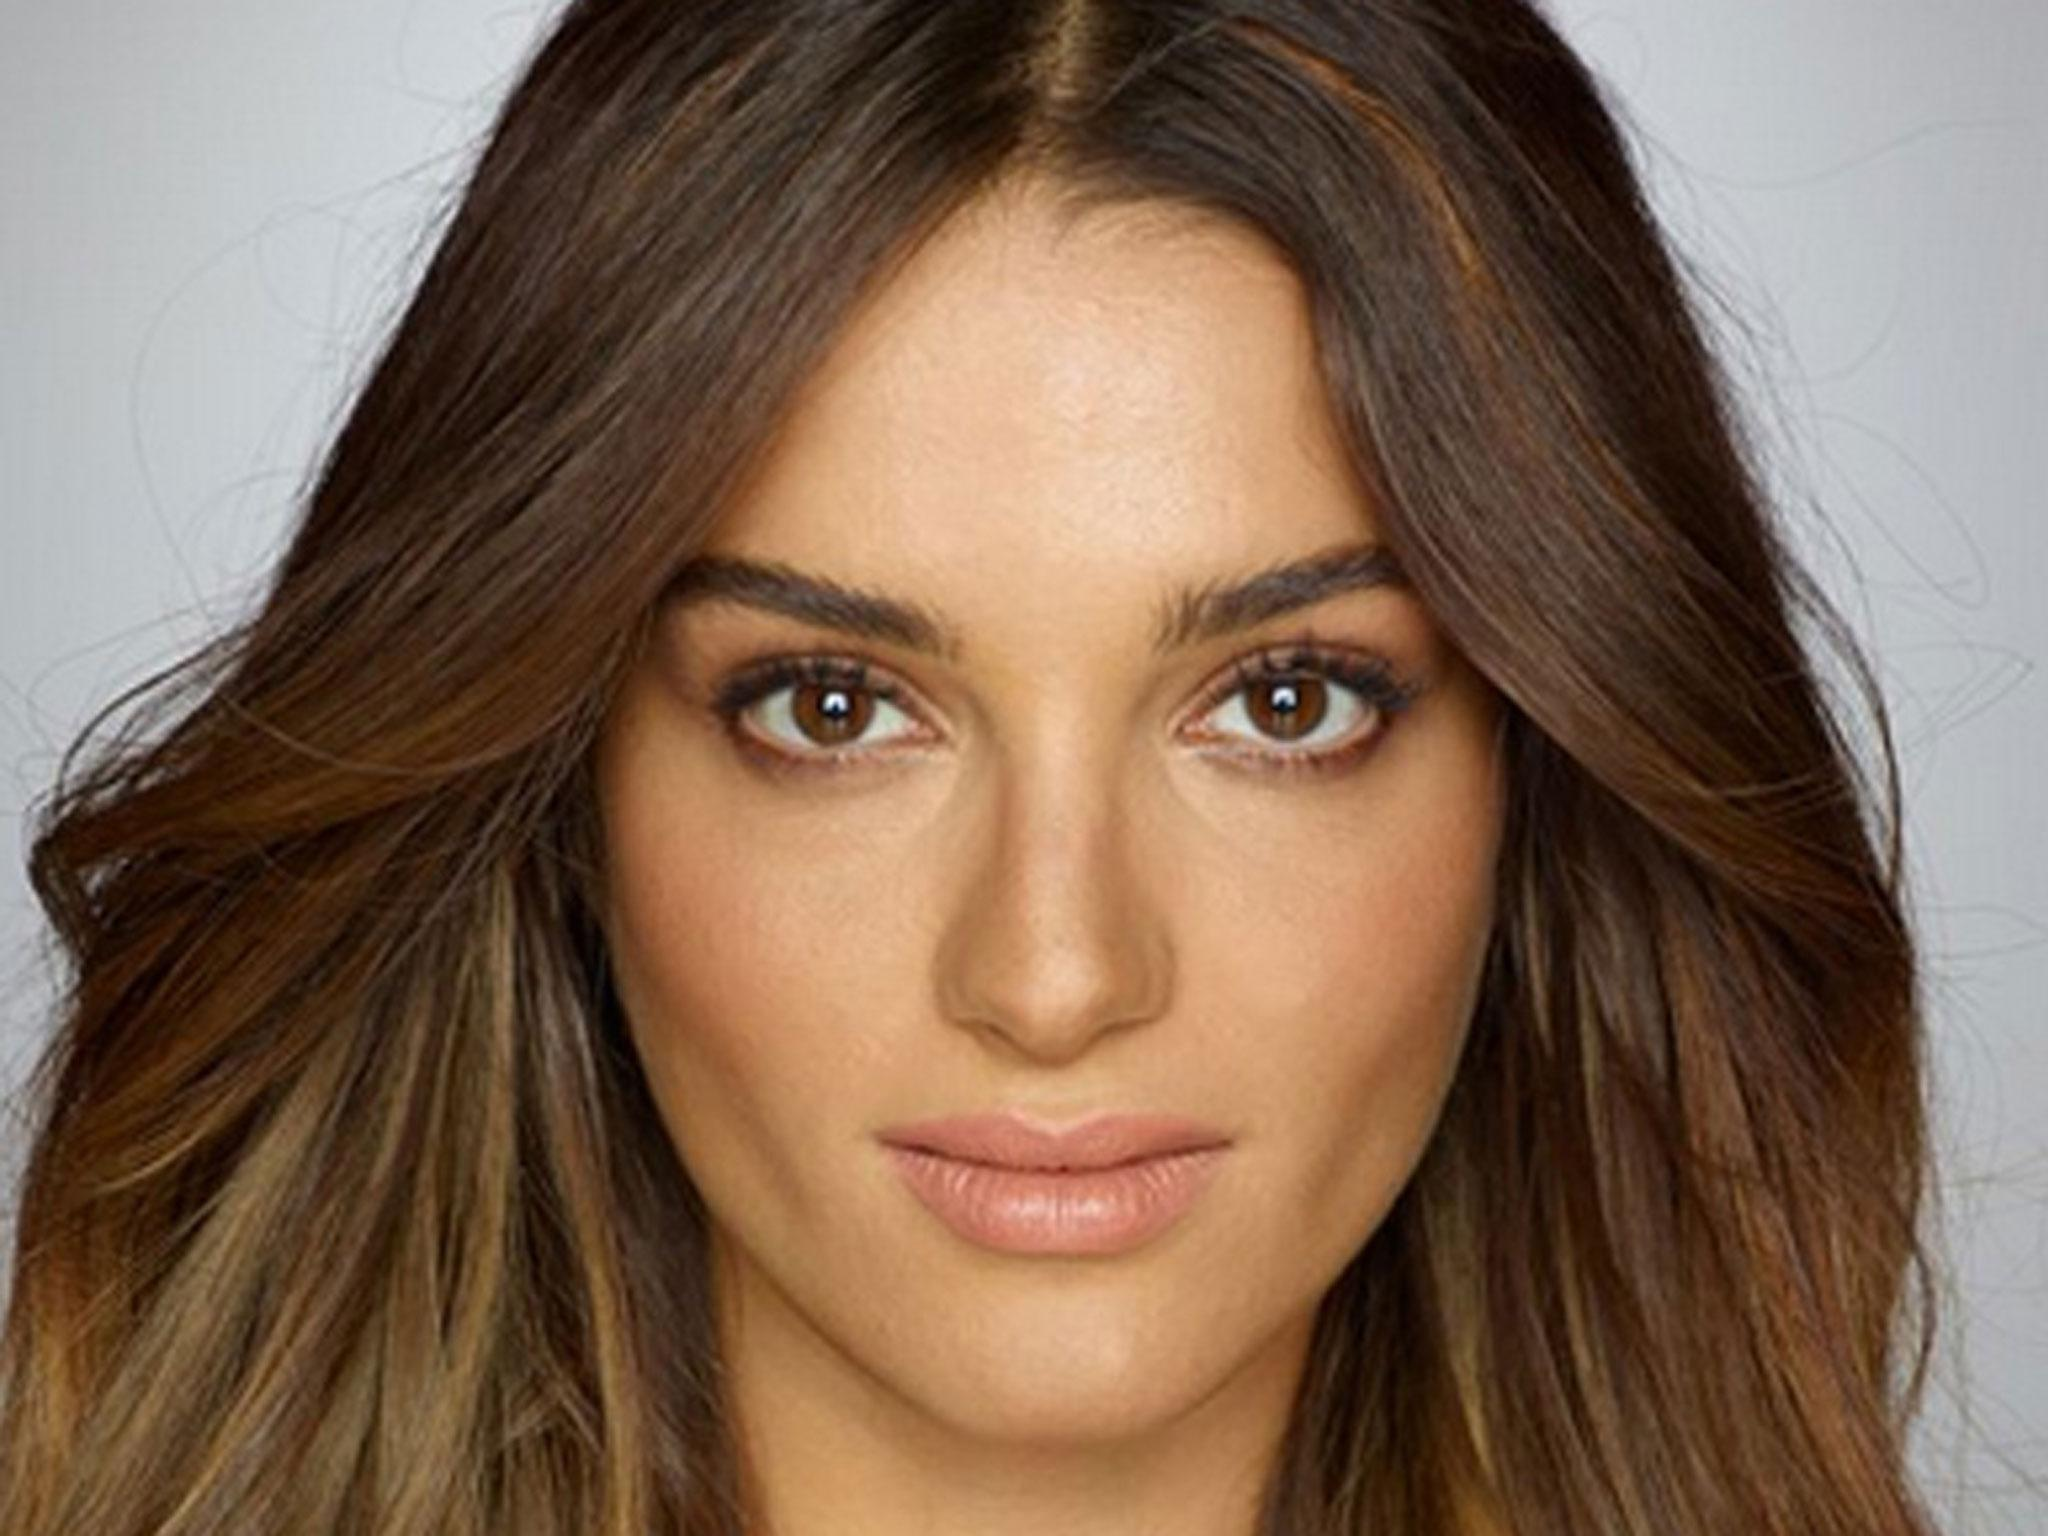 10 Best Foundations For Olive Skin The Independent The Independent